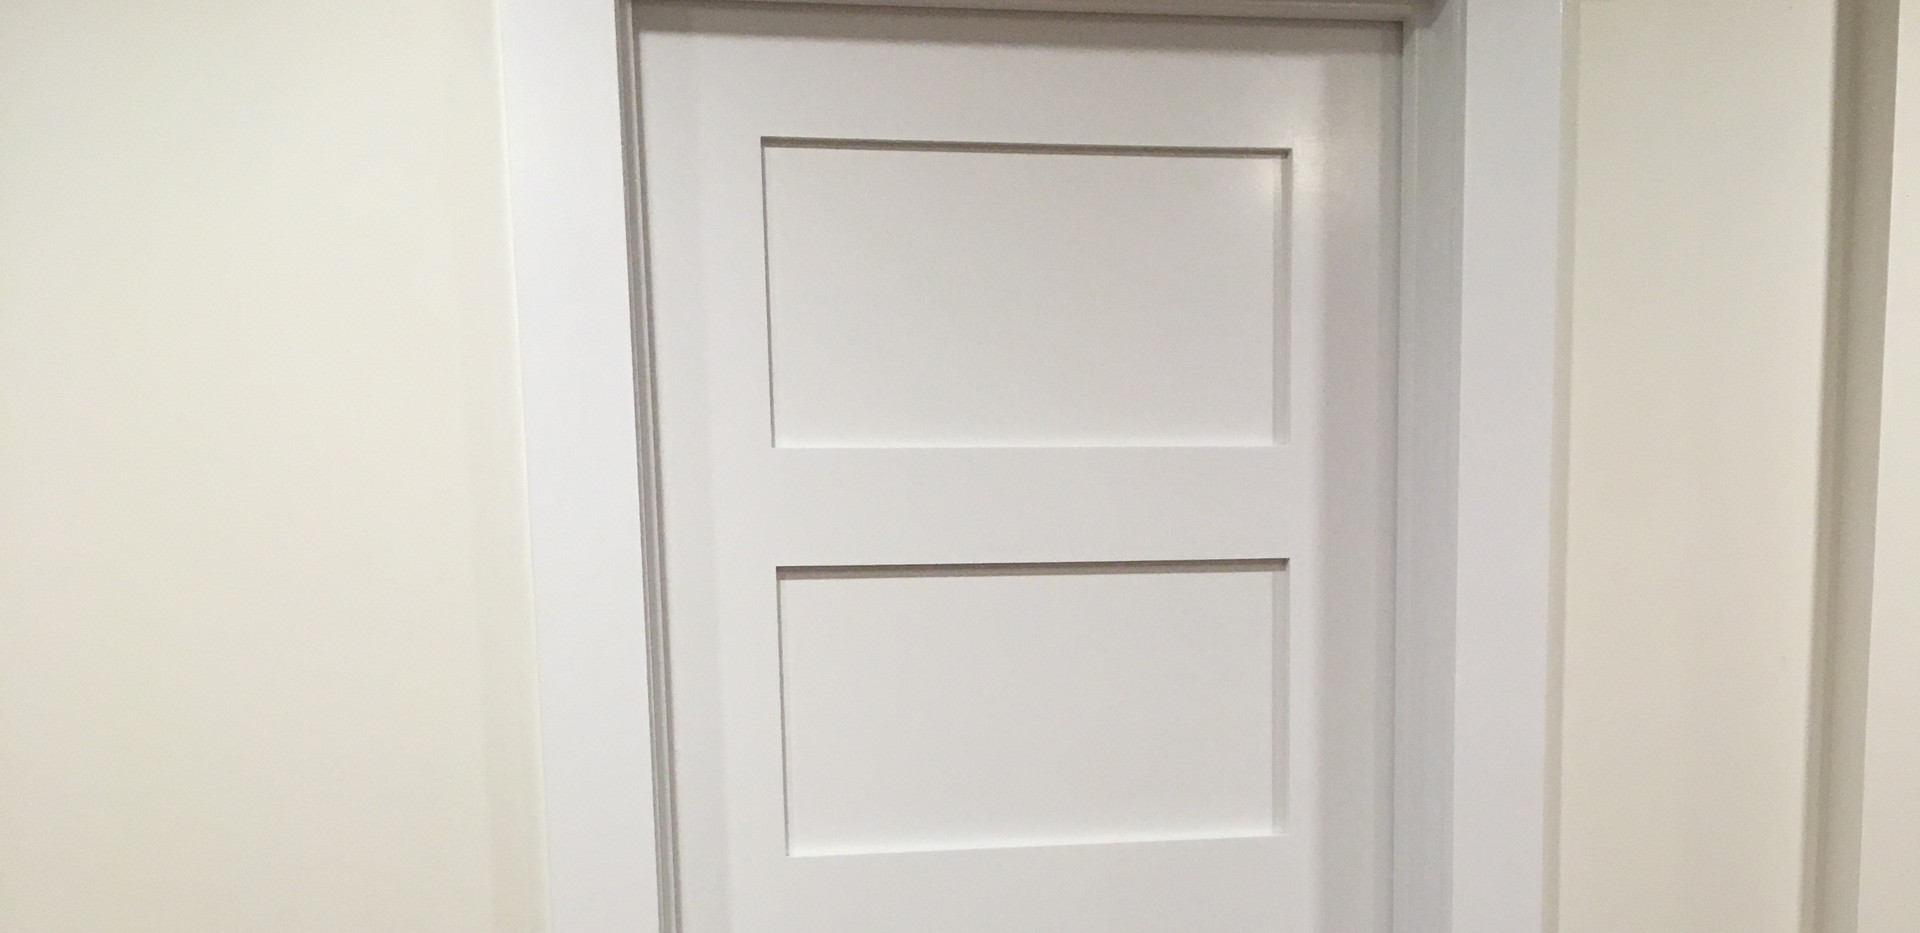 Craftsman style trim on 5 panel shaker door.